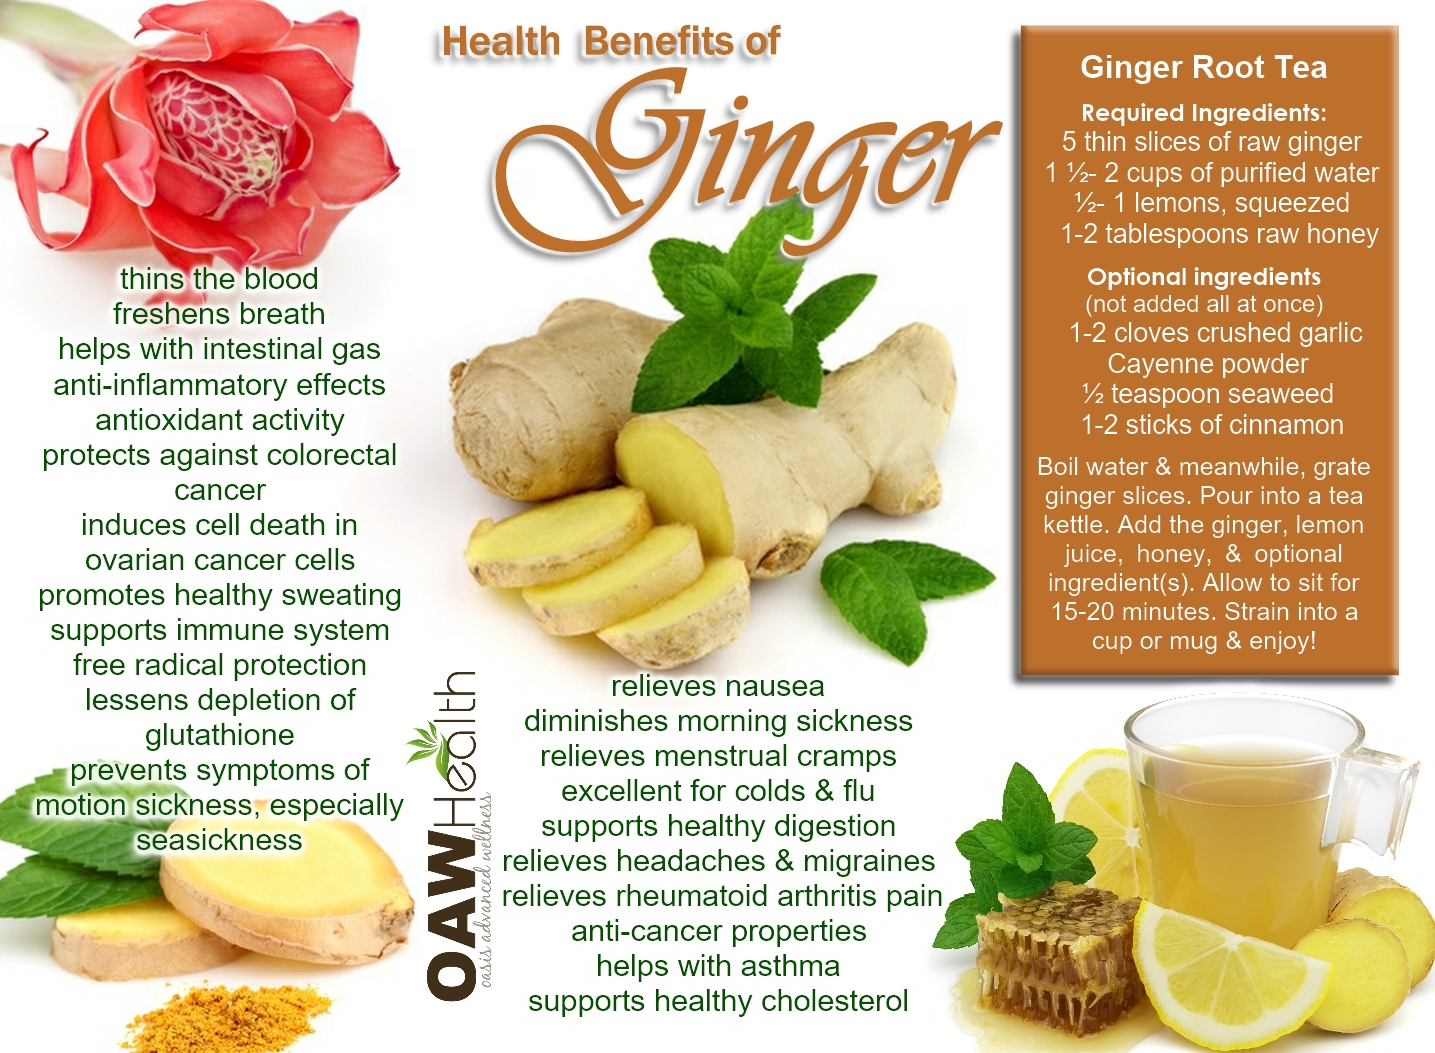 ginger-health-benefits.jpg